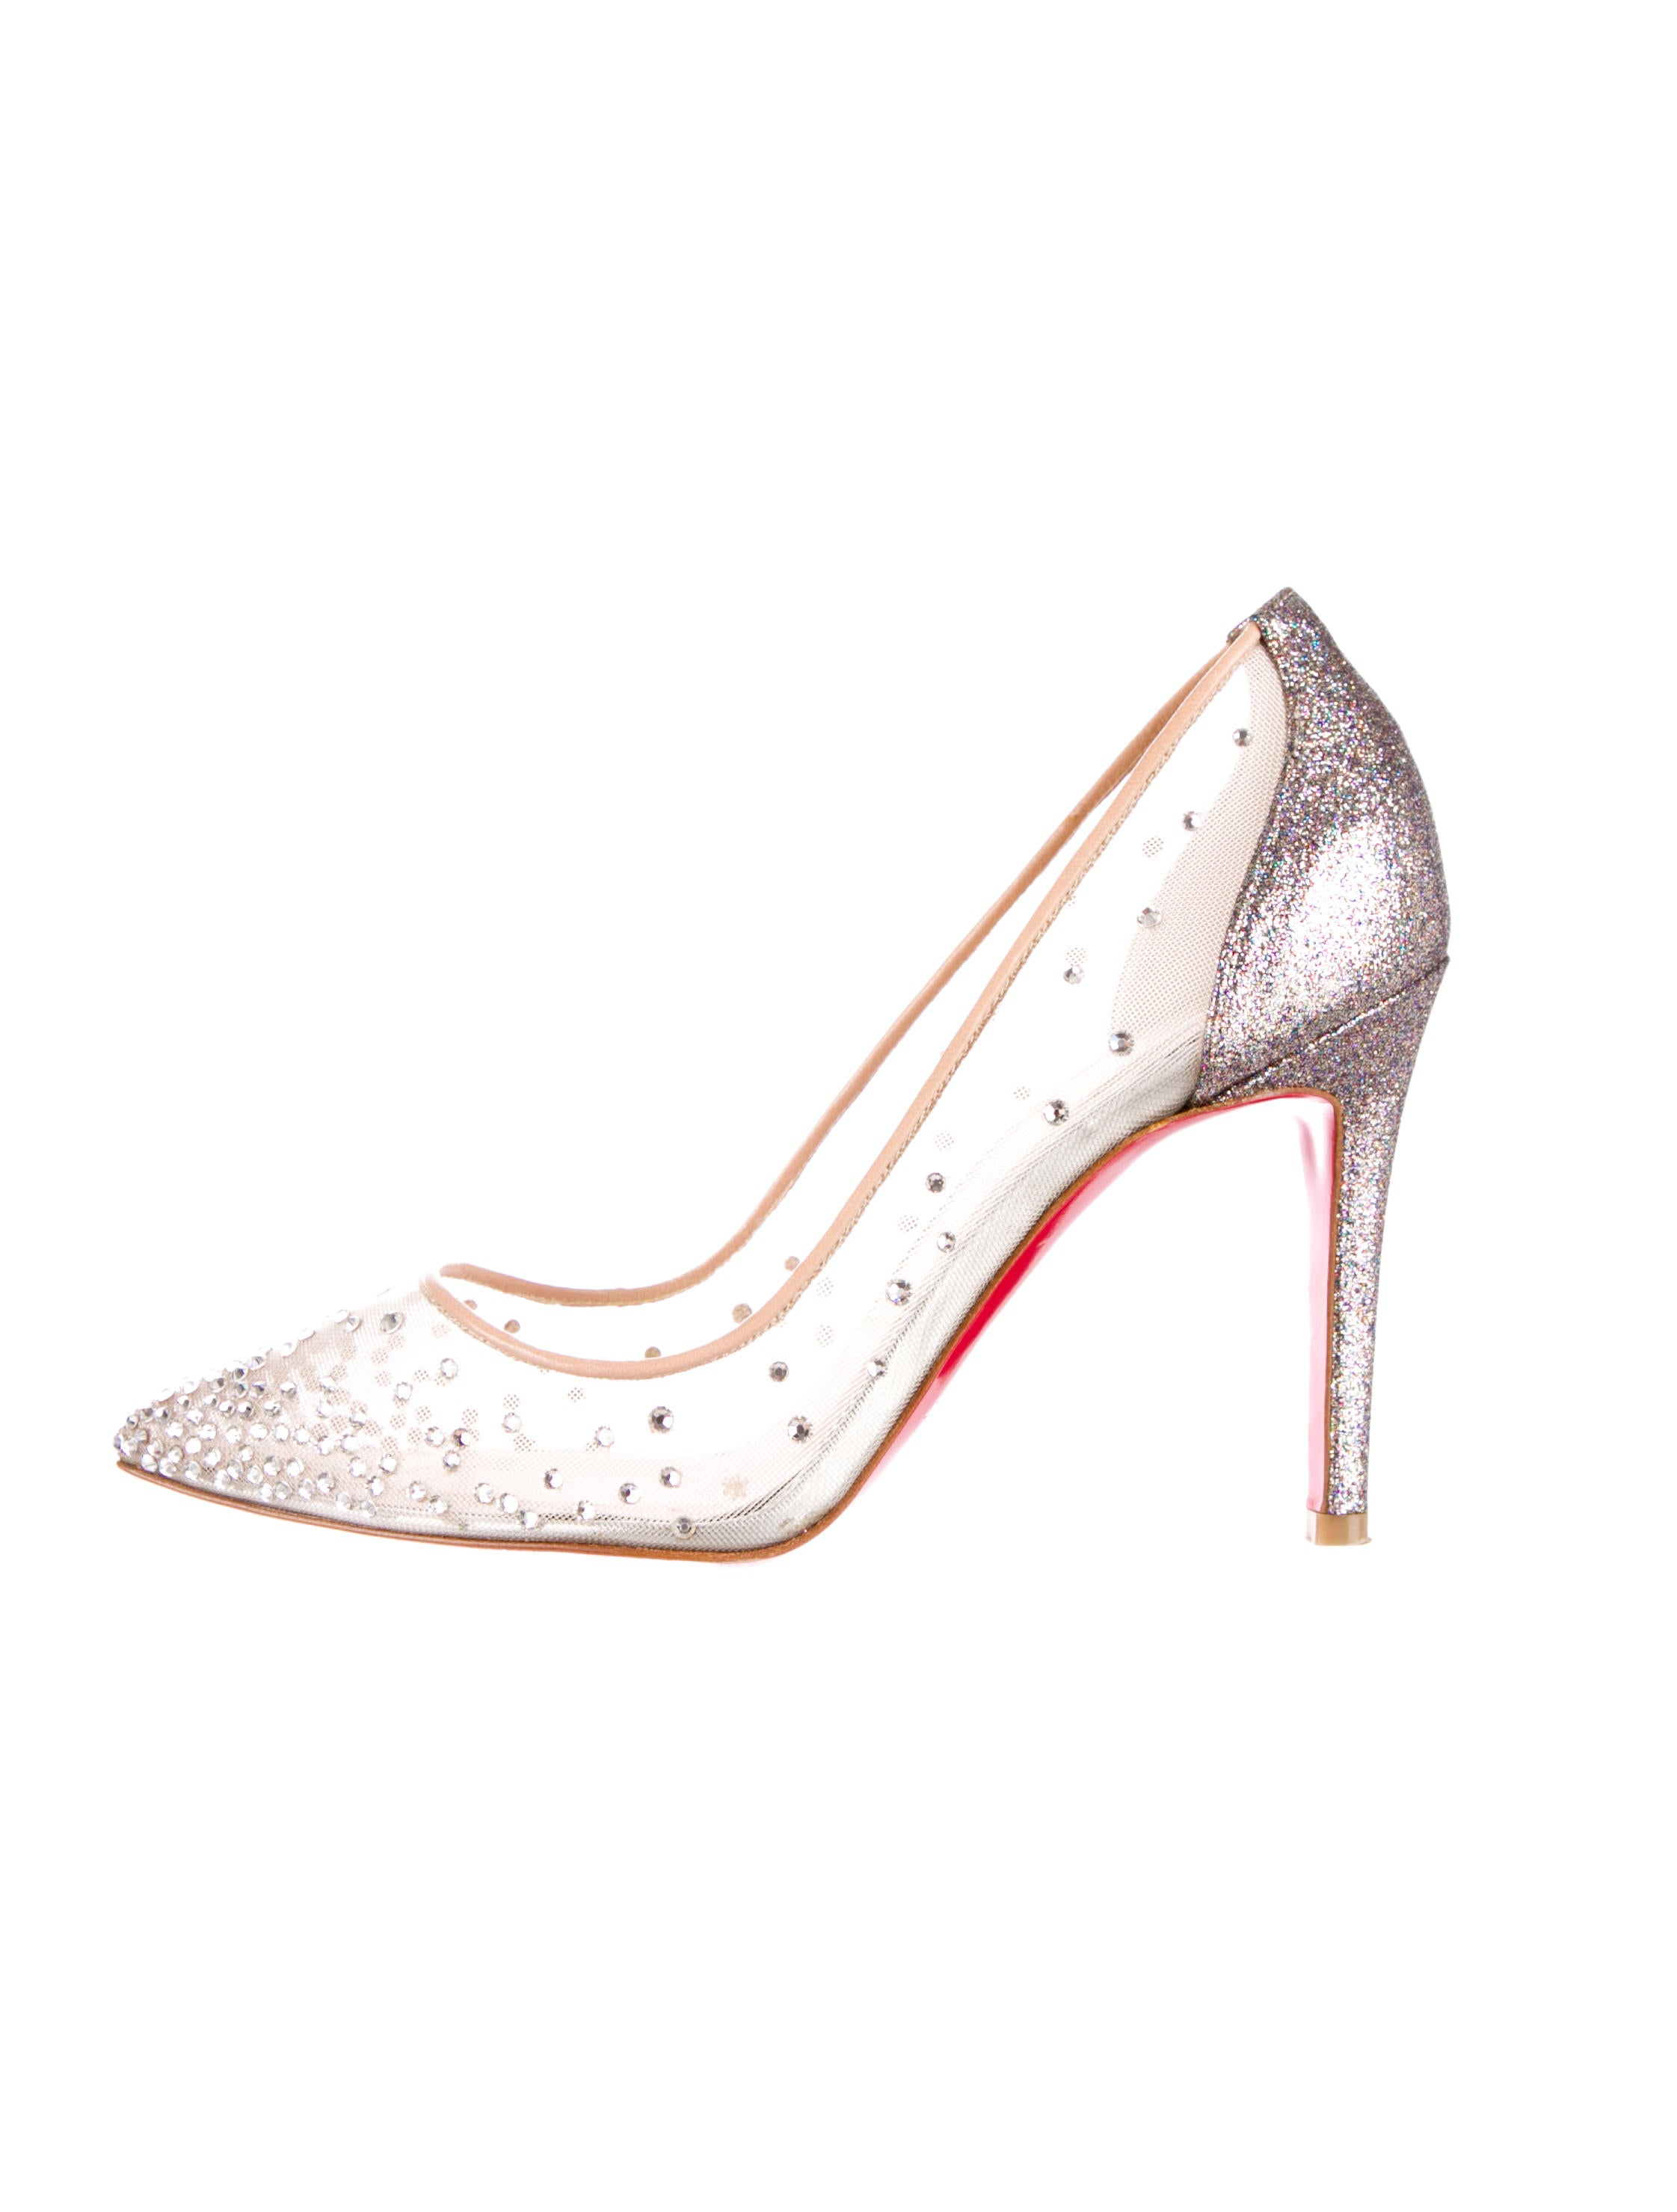 spikes sneakers - Artesur ? christian louboutin Follies pumps Beige and multicolor ...